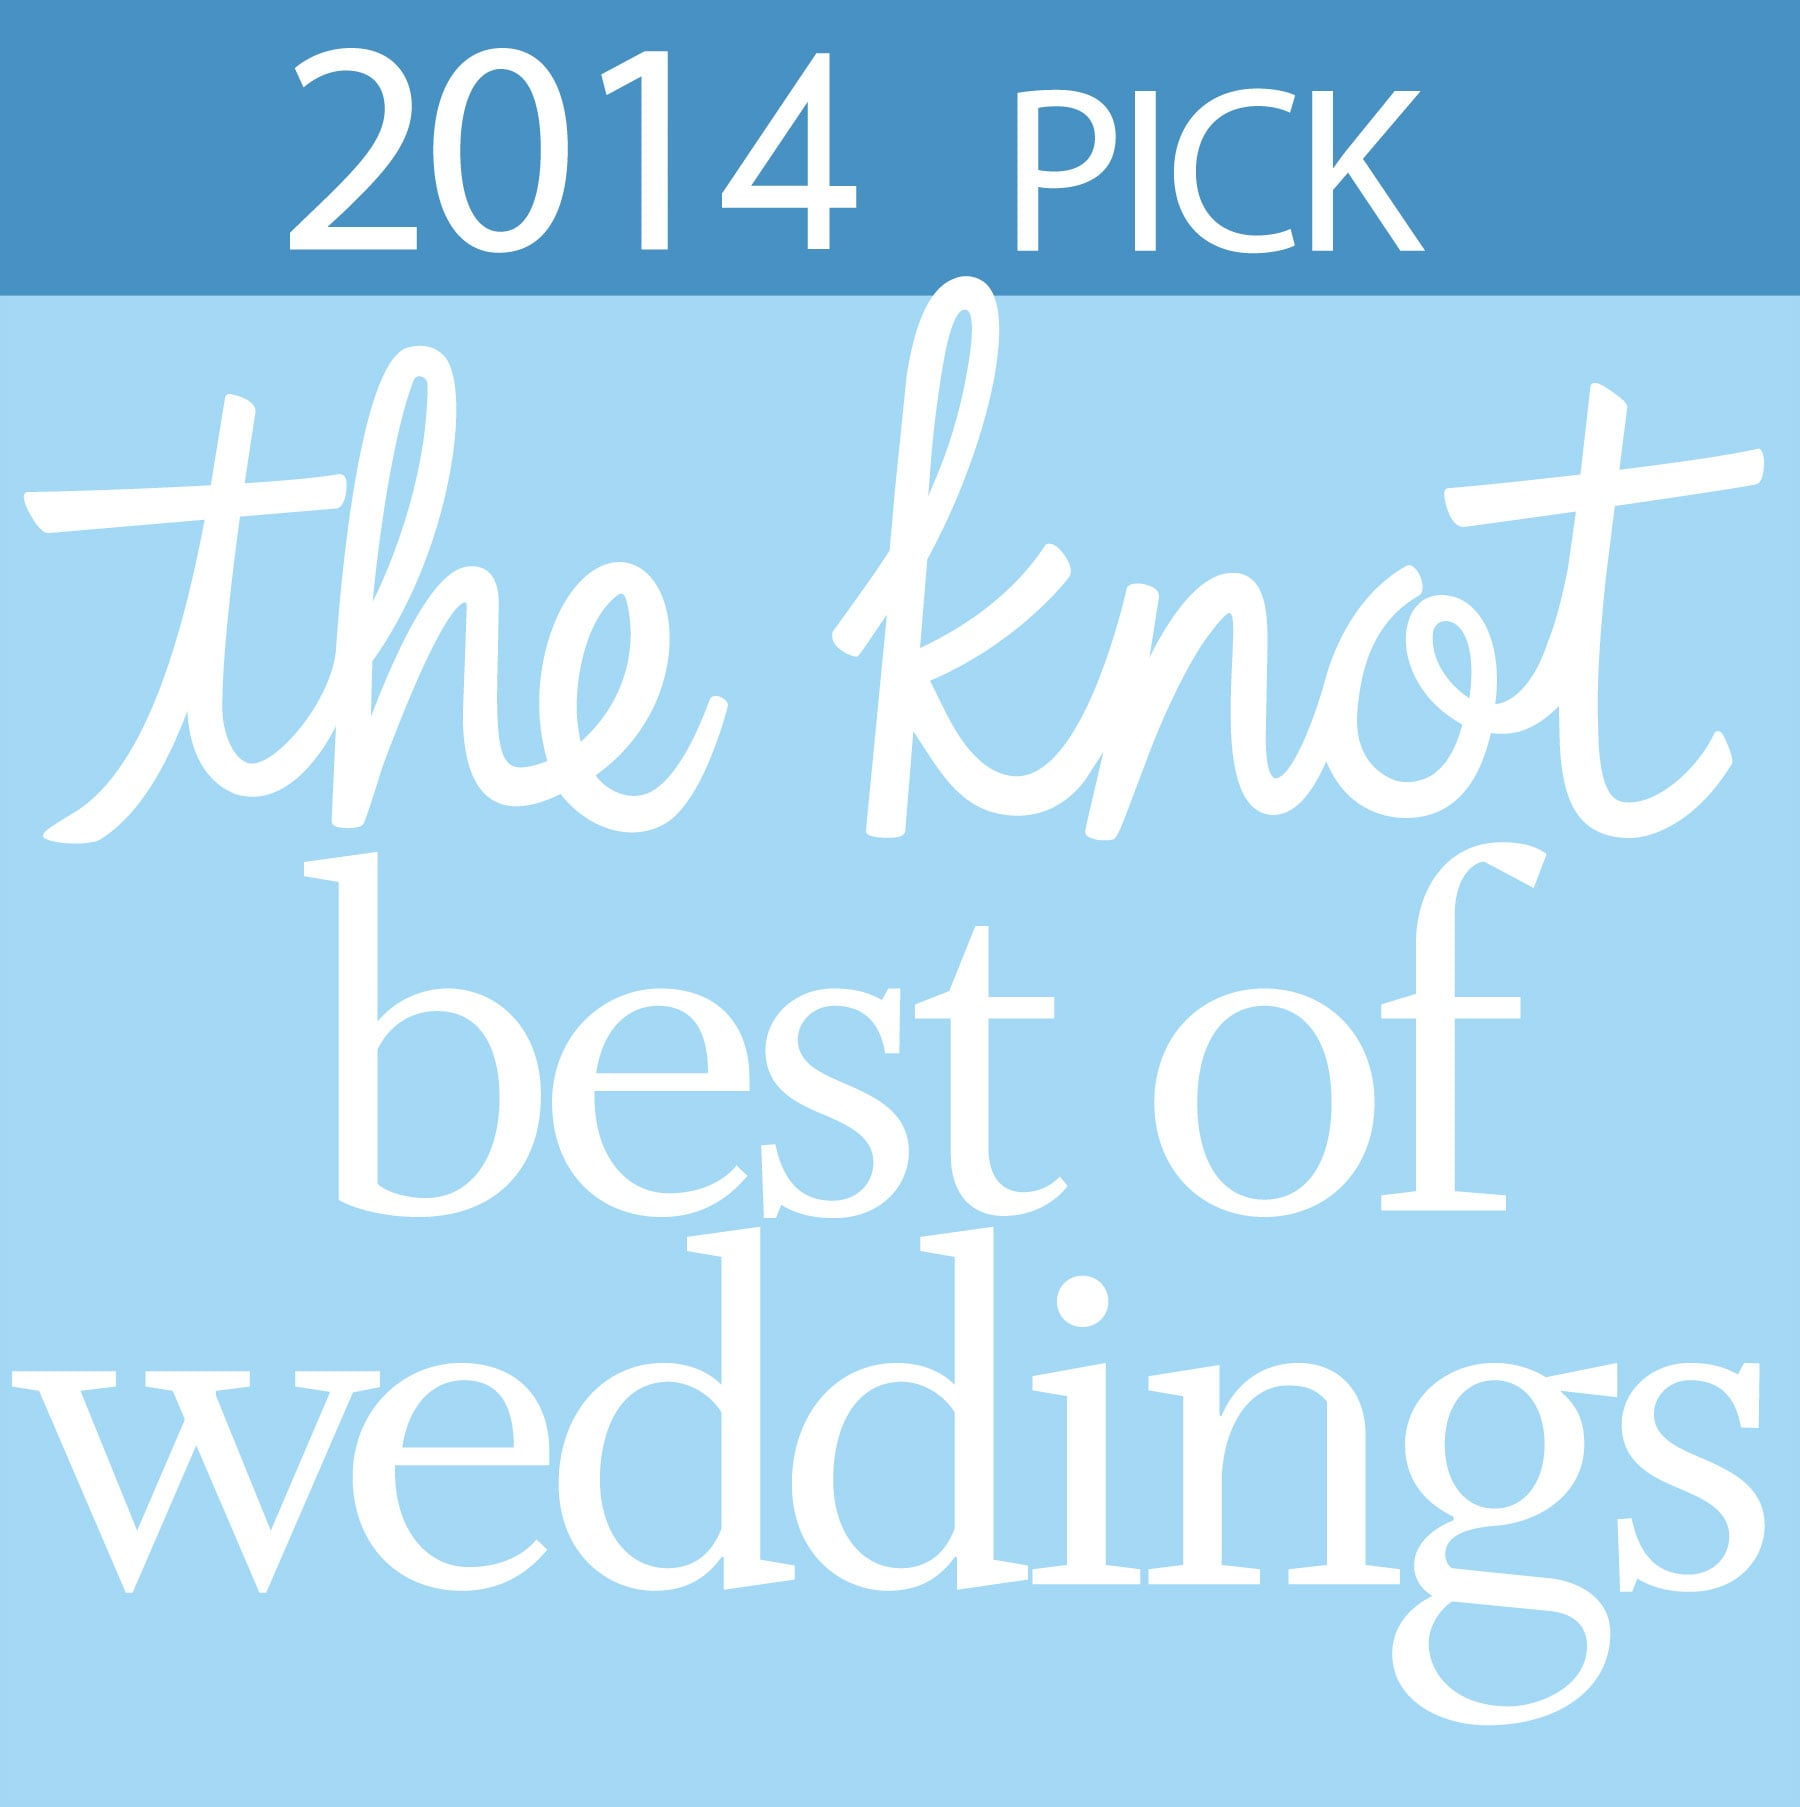 Knot-best-of-weddings-logo-20141.jpg